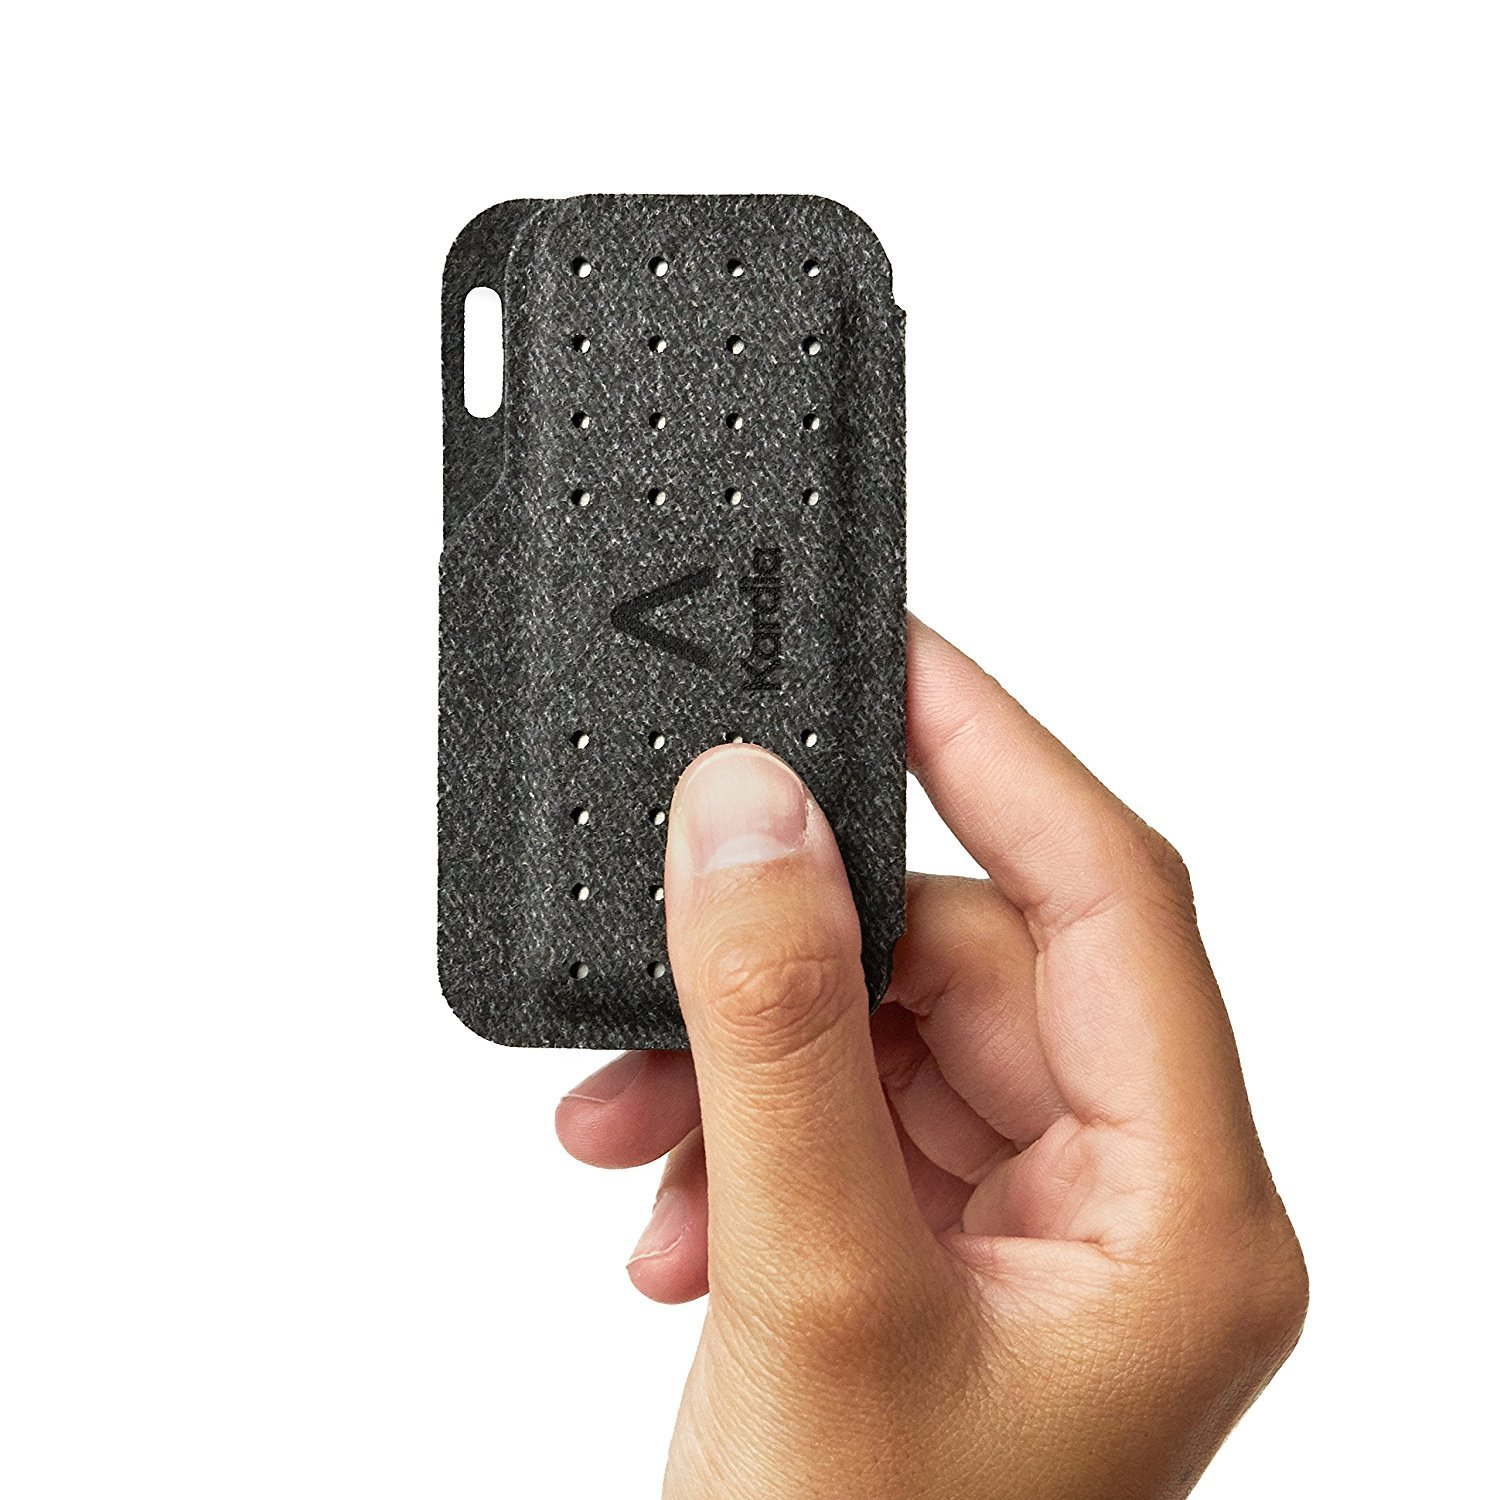 Alivecor® Kardia Mobile Carry Pod Carrying Case | Travel Case Features Magnetic Closure to Keep Kardia Device Safe On-The-Go | Fits in Pocket or Purse or Attaches to Keyring by AliveCor